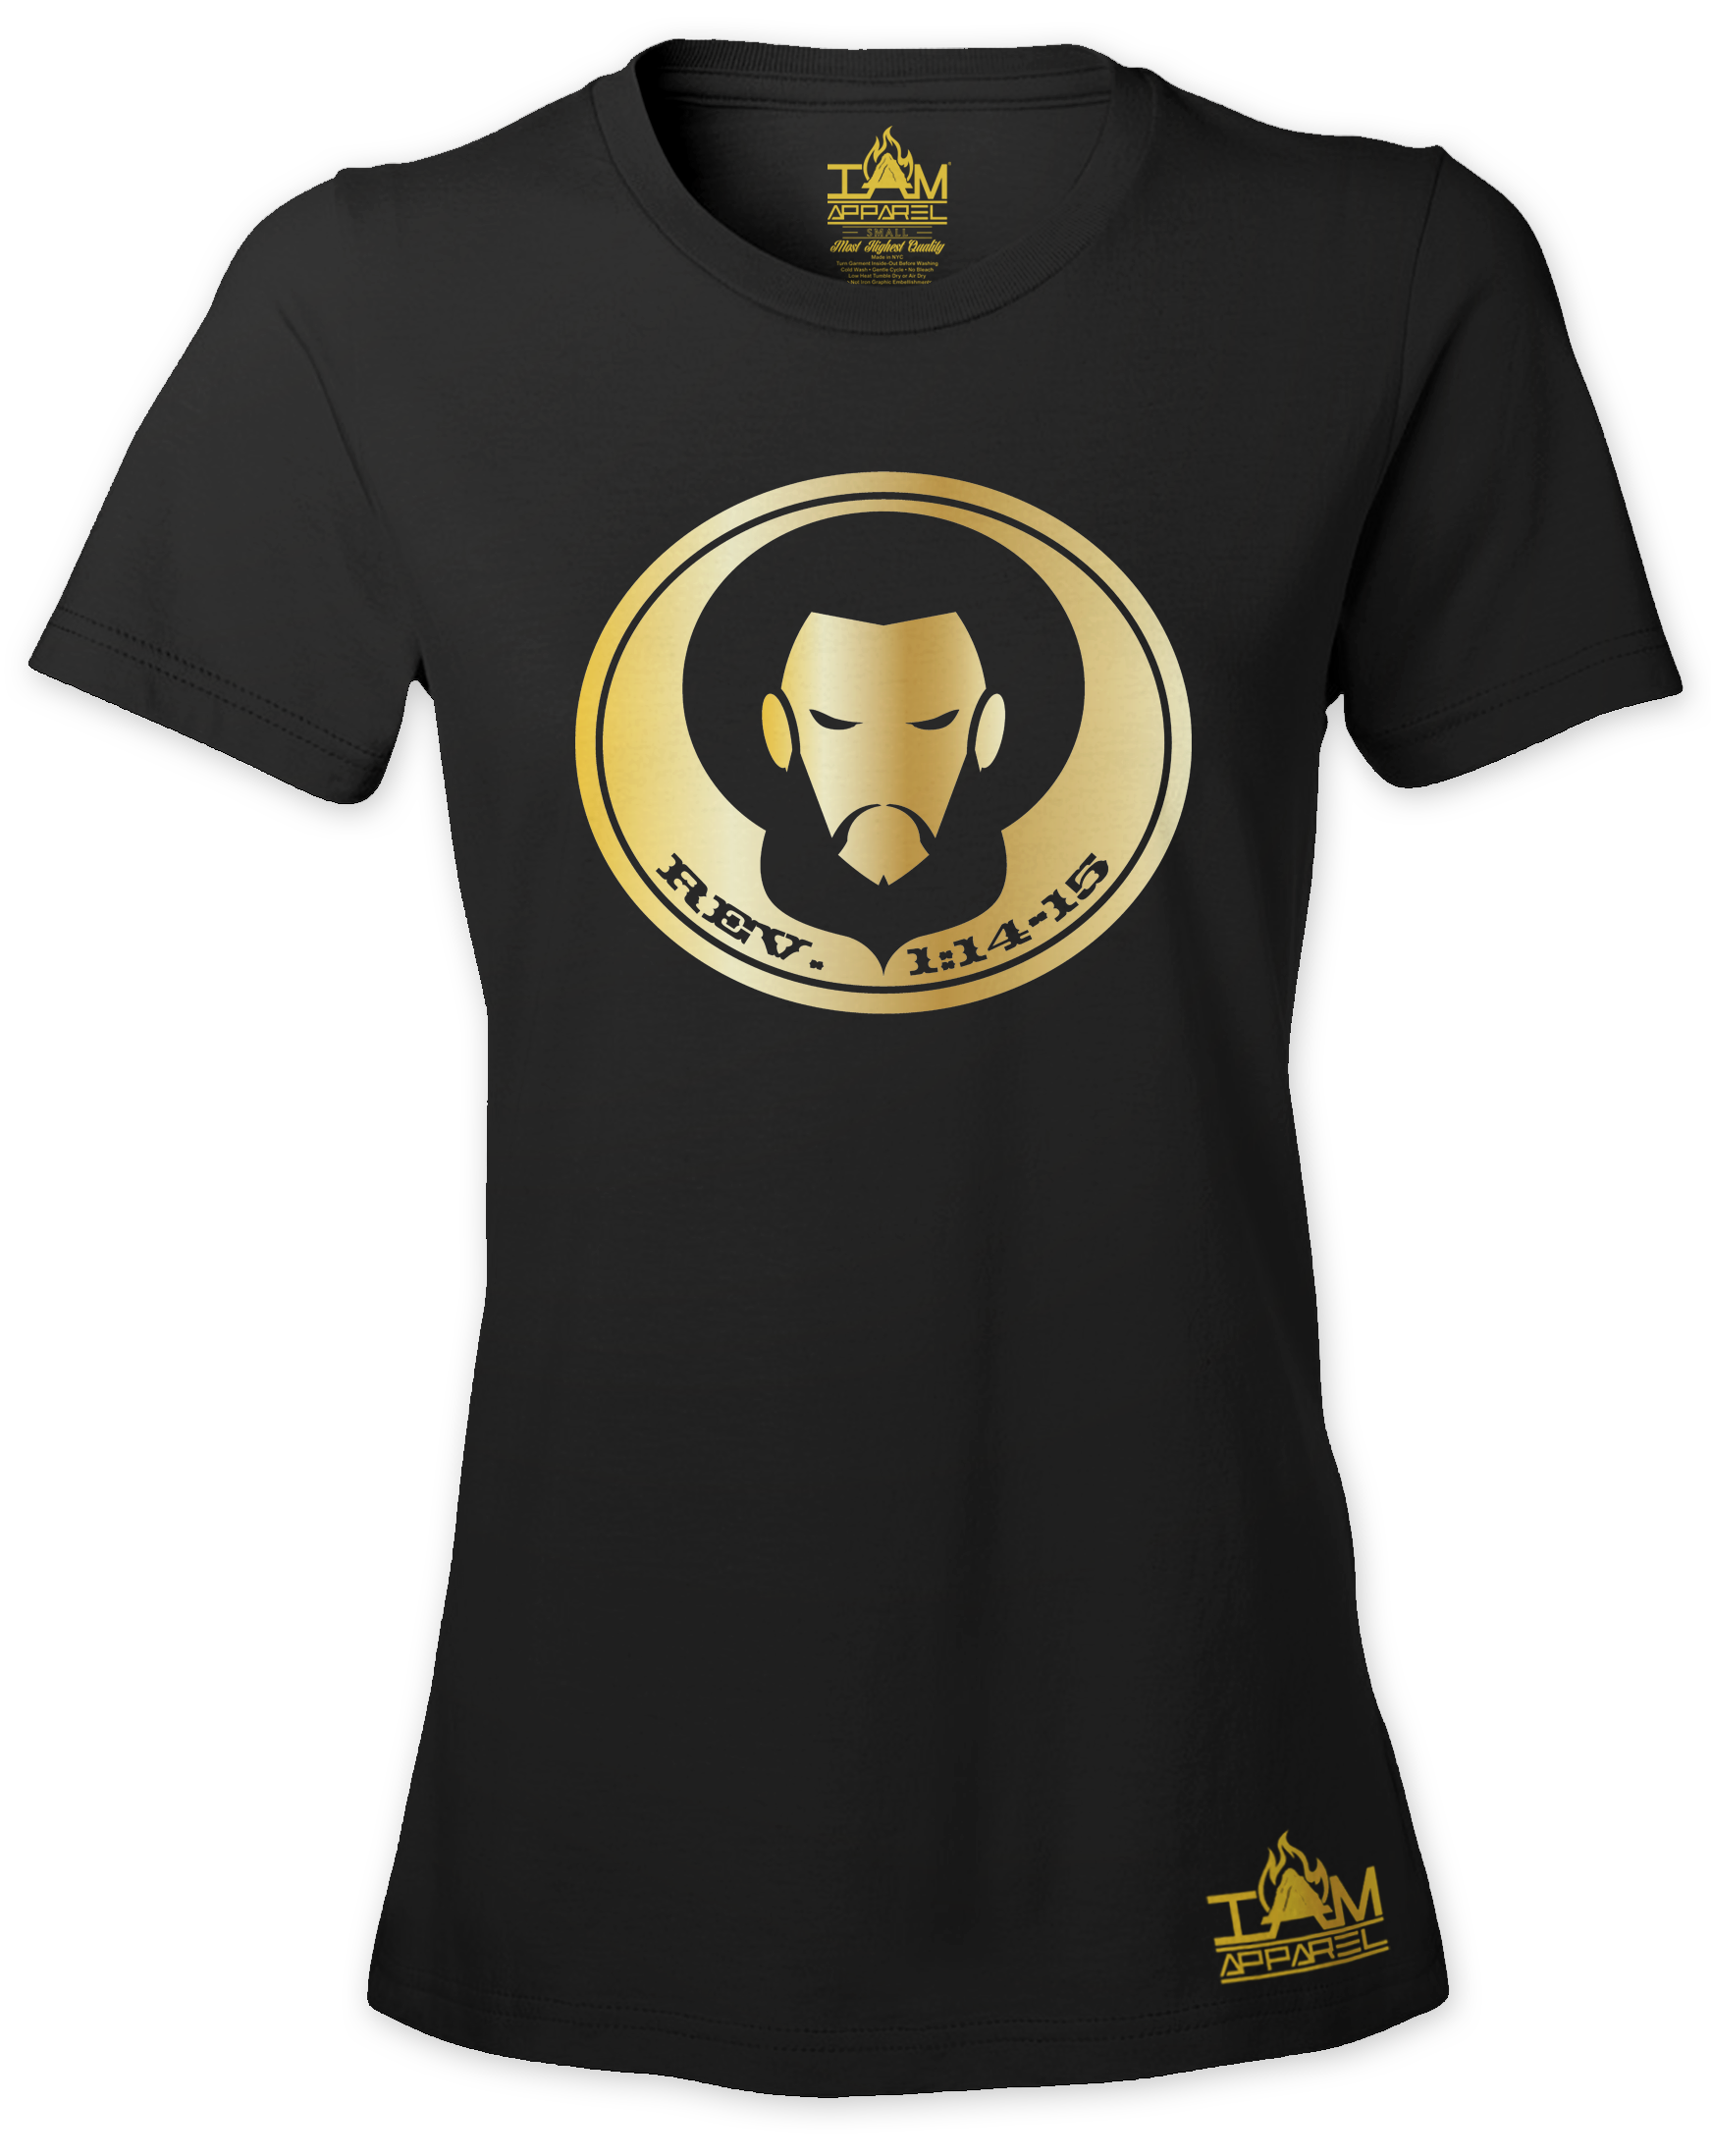 Women's GOLDEN SERIES Short Sleeved Scripture and Image of Christ T-shirt 00128